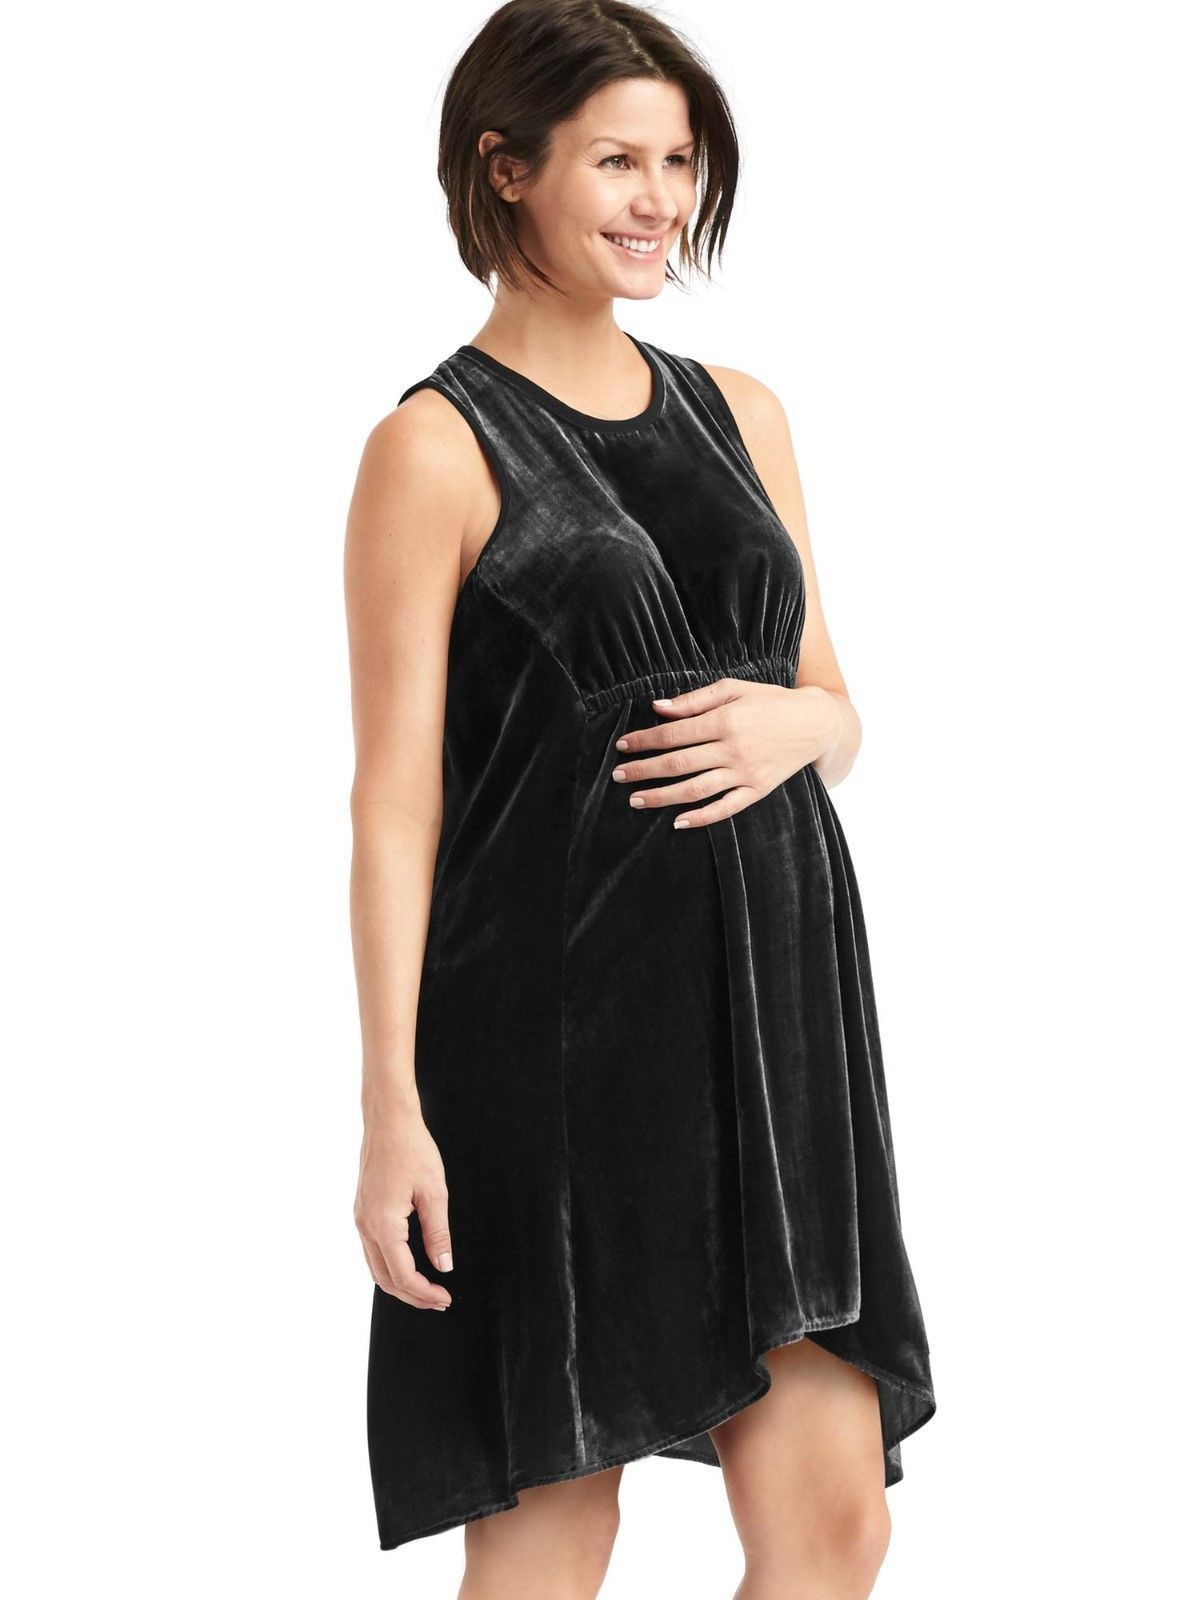 Awesome amazing gap womens maternity holiday black velvet awesome amazing gap womens maternity holiday black velvet racerback dress size m medium nwt 2017 2018 ombrellifo Gallery